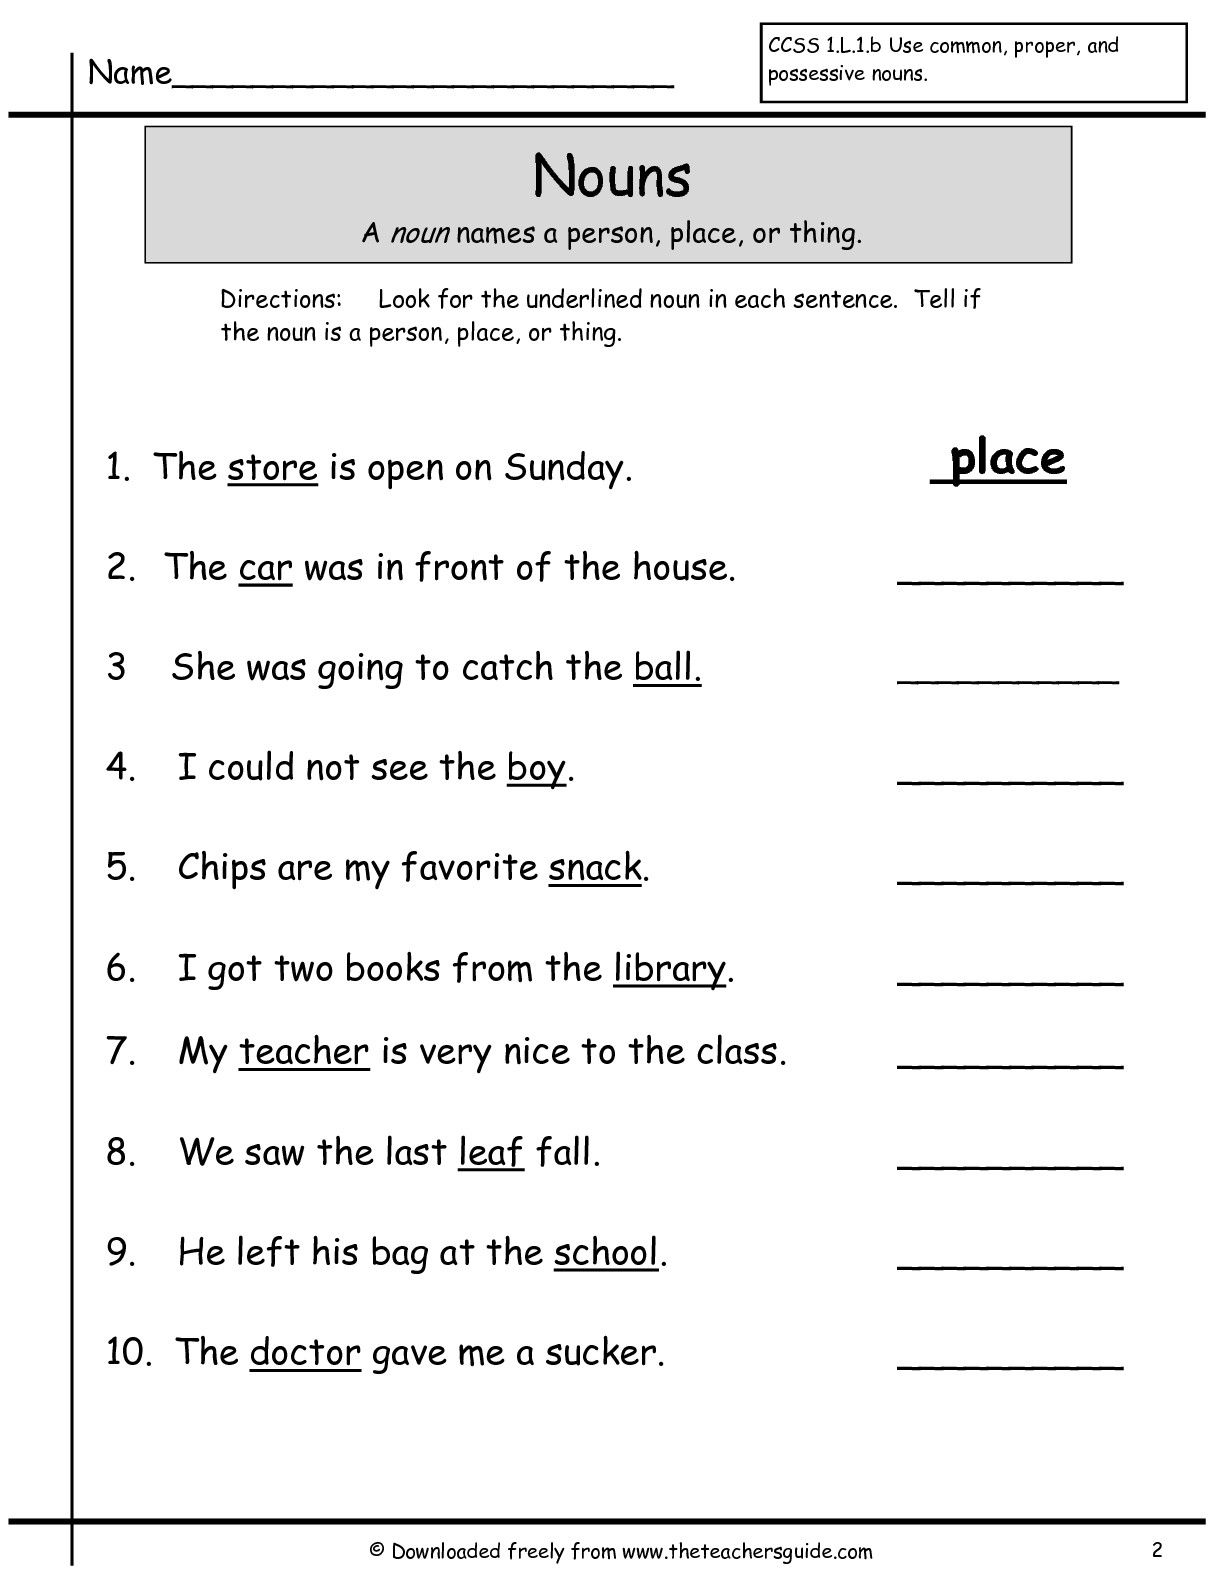 Uncategorized Social Studies Worksheets For 1st Grade nouns grade 1 worksheets google search kelina pinterest search